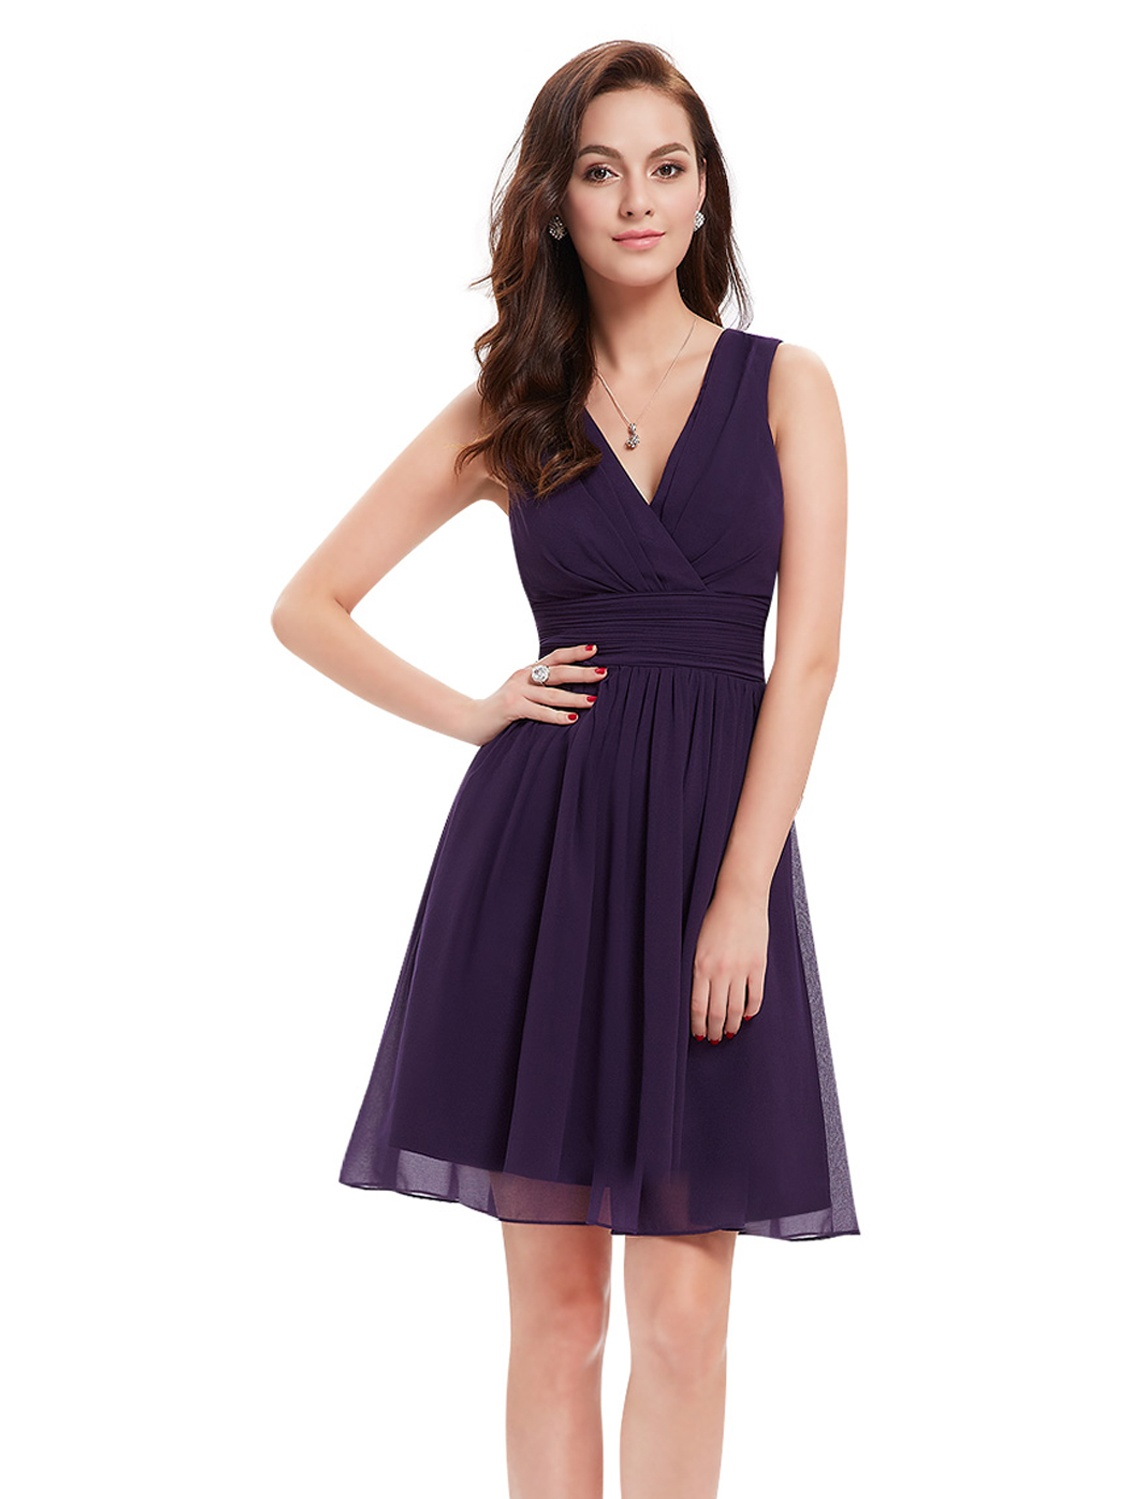 ab29591966f Ever-pretty - Ever-Pretty Women s Plus Size Short Formal Evening Cocktail  Bridesmaid Summer Casual Dresses for Women 03989 Purple US 16 - Walmart.com